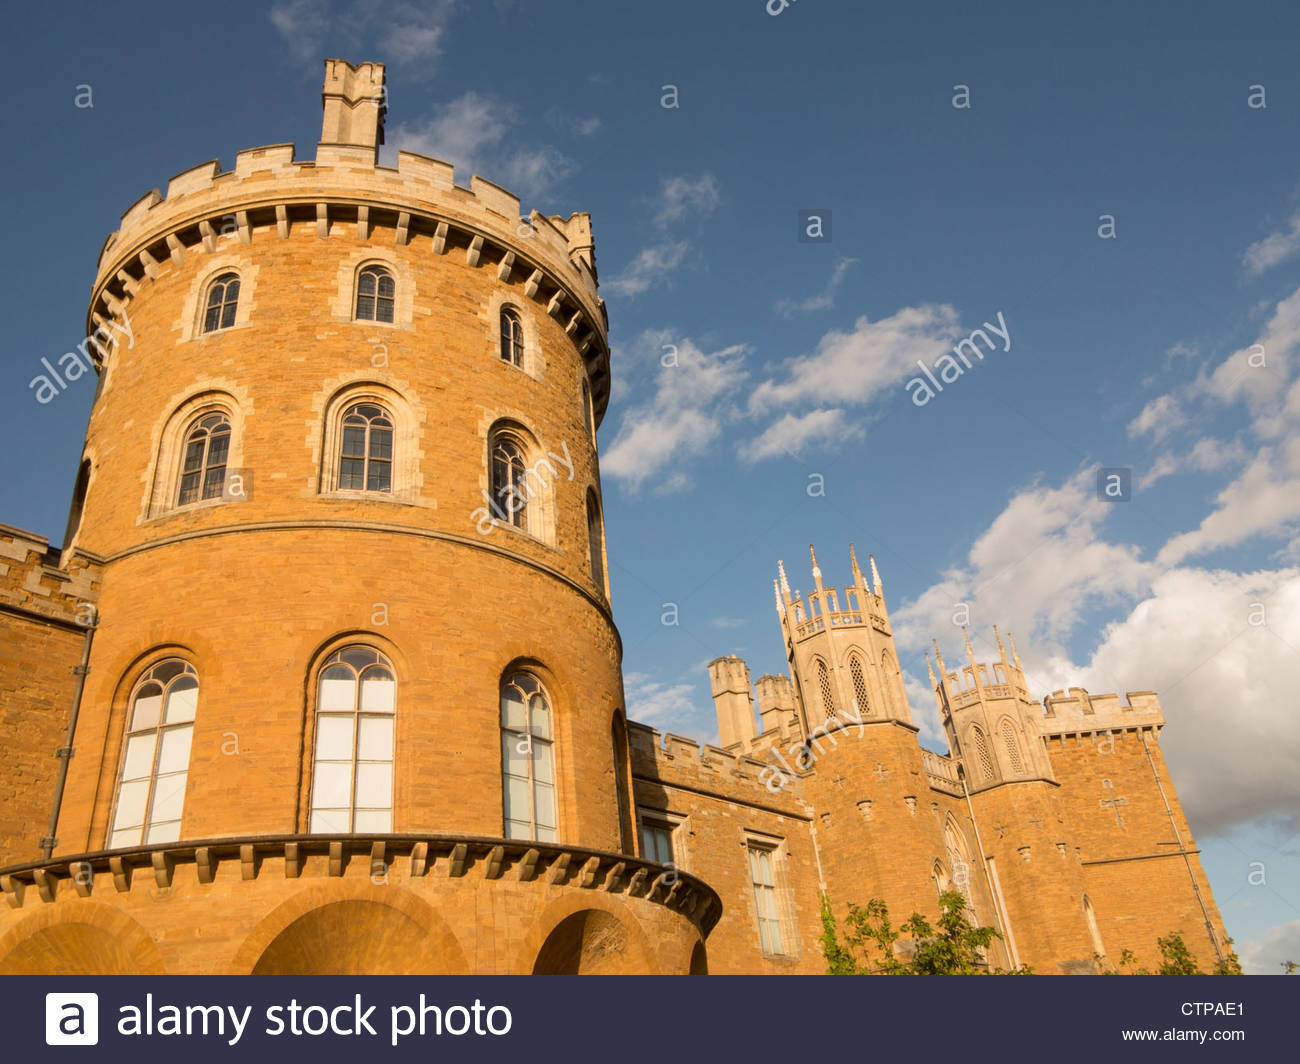 Belvoir Castle Leicestershire Seat of Dukes of Rutland - Stock Image